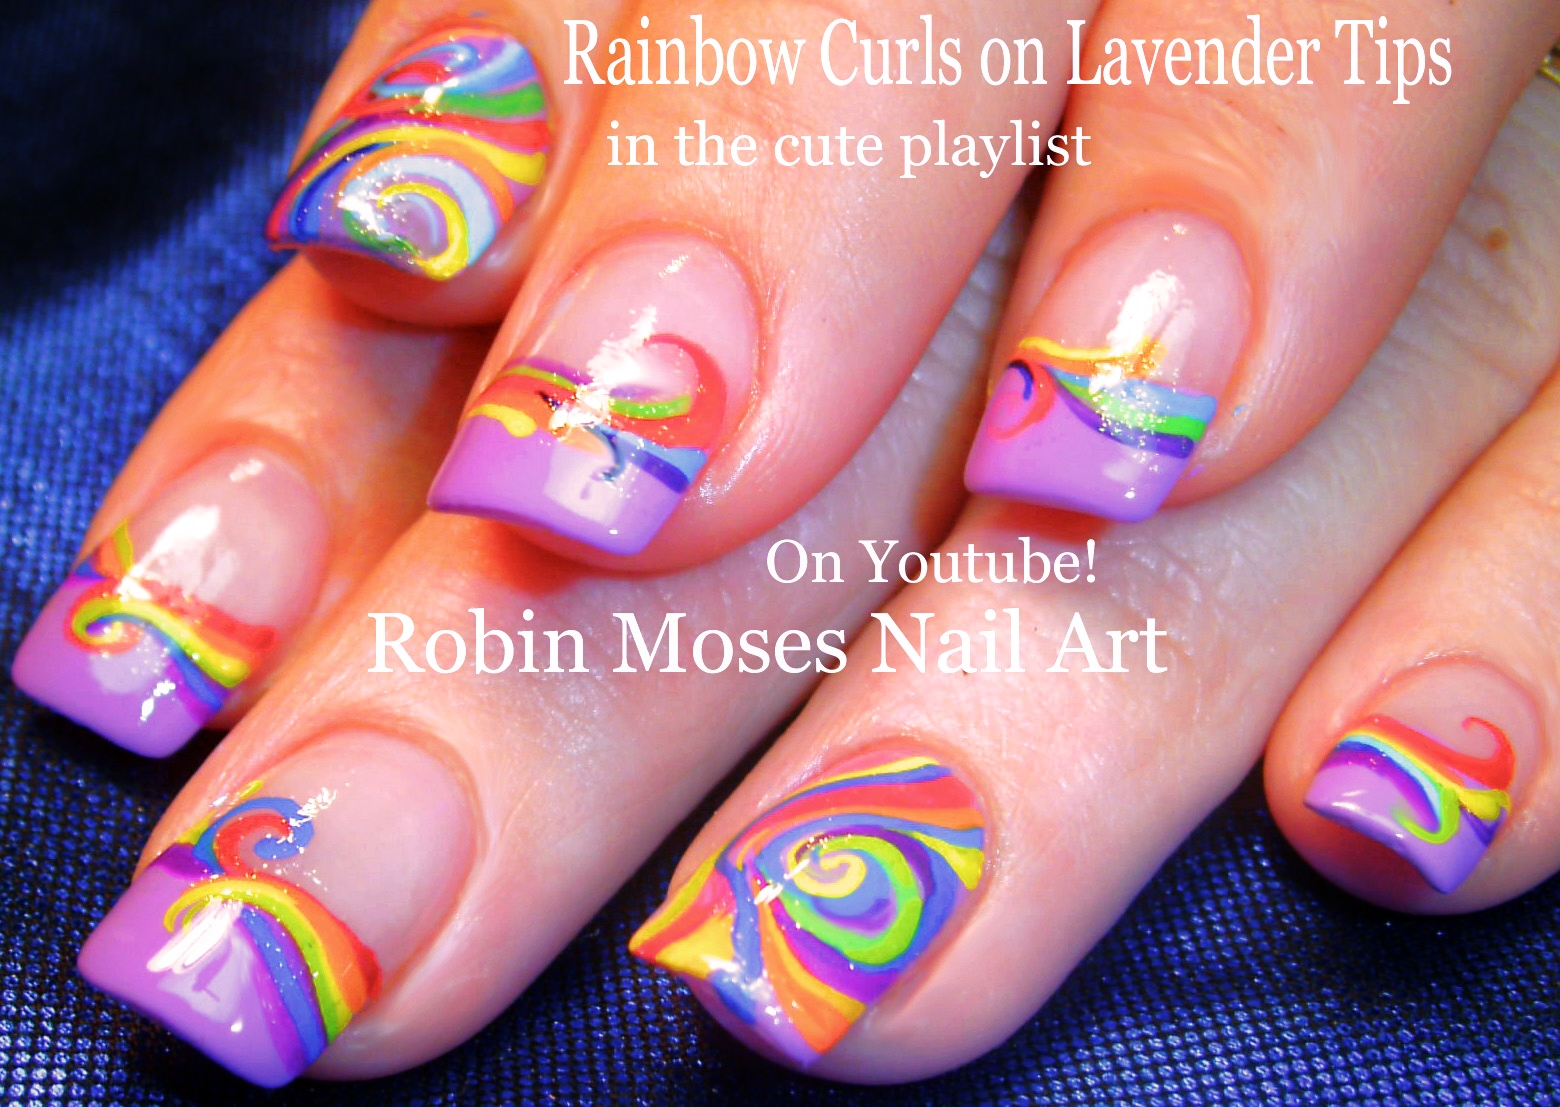 Robin moses nail art rainbow curls on lavender tips nail art rainbow curls on lavender tips nail art design tutorial and pink black and white flower nails prinsesfo Gallery